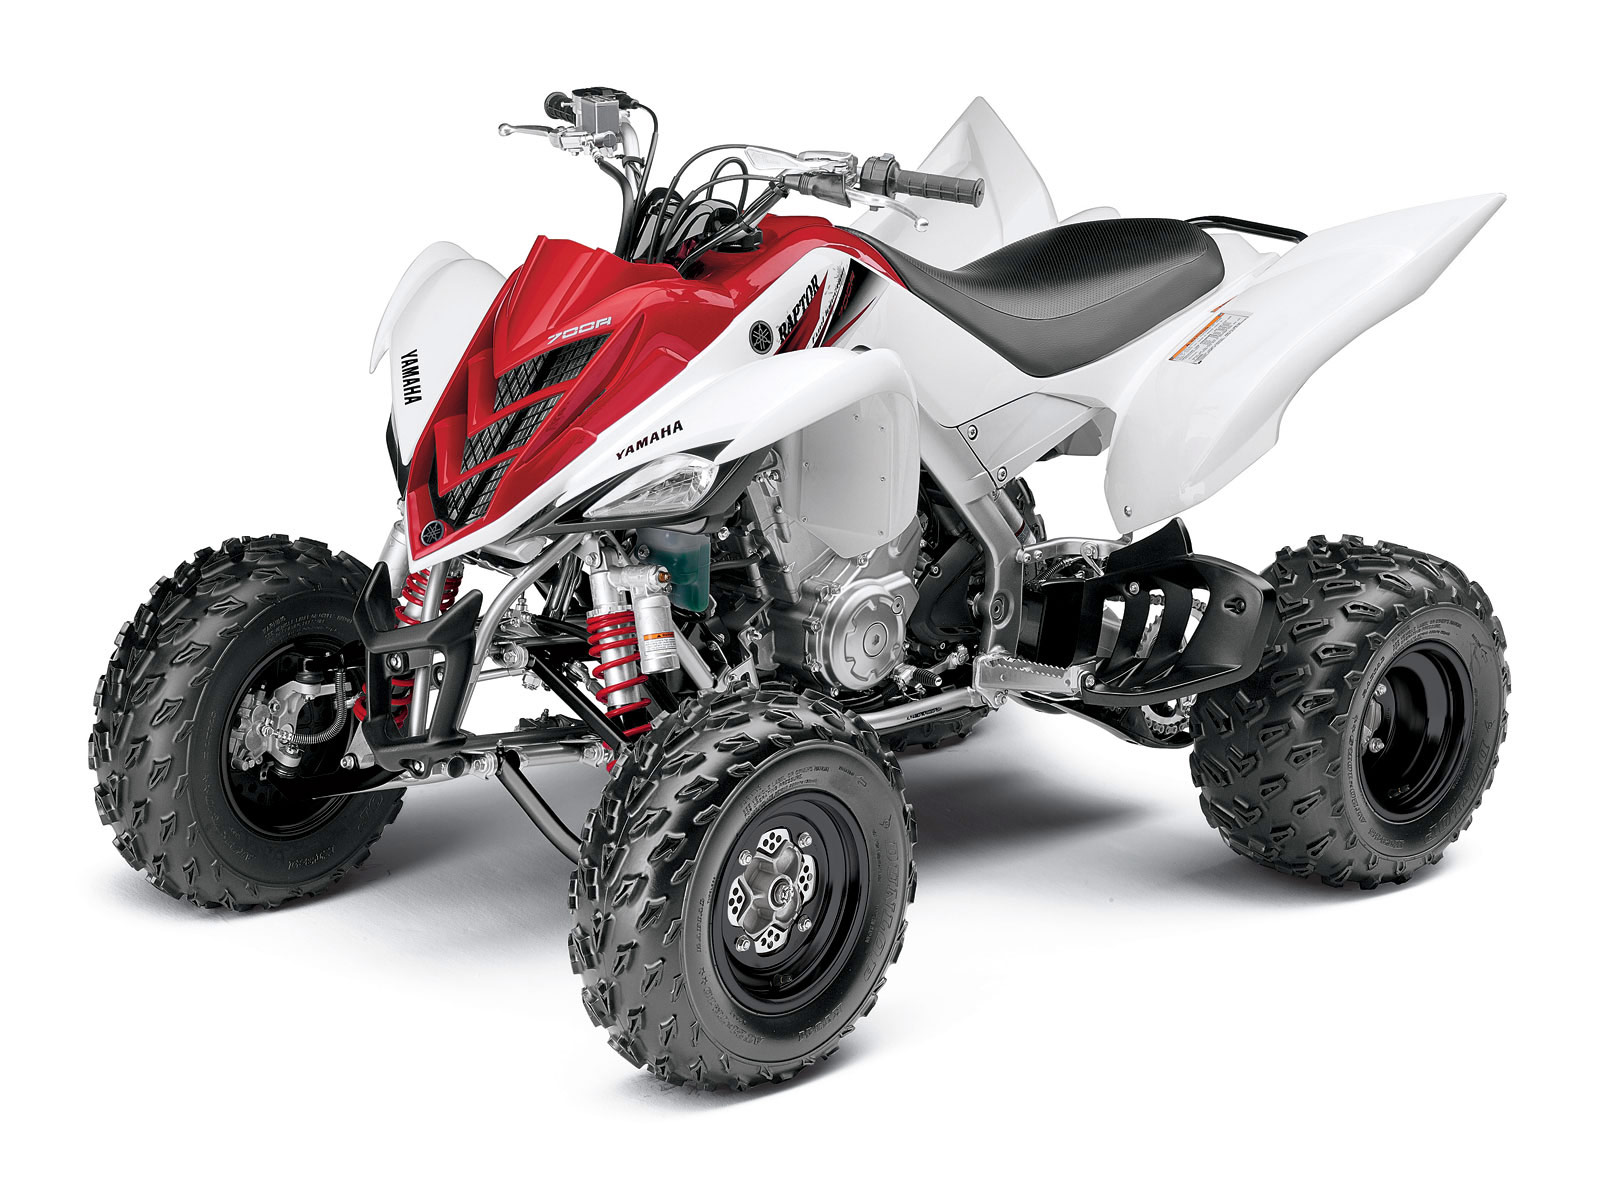 2011 yamaha raptor 700r atv wallpapers specifications. Black Bedroom Furniture Sets. Home Design Ideas